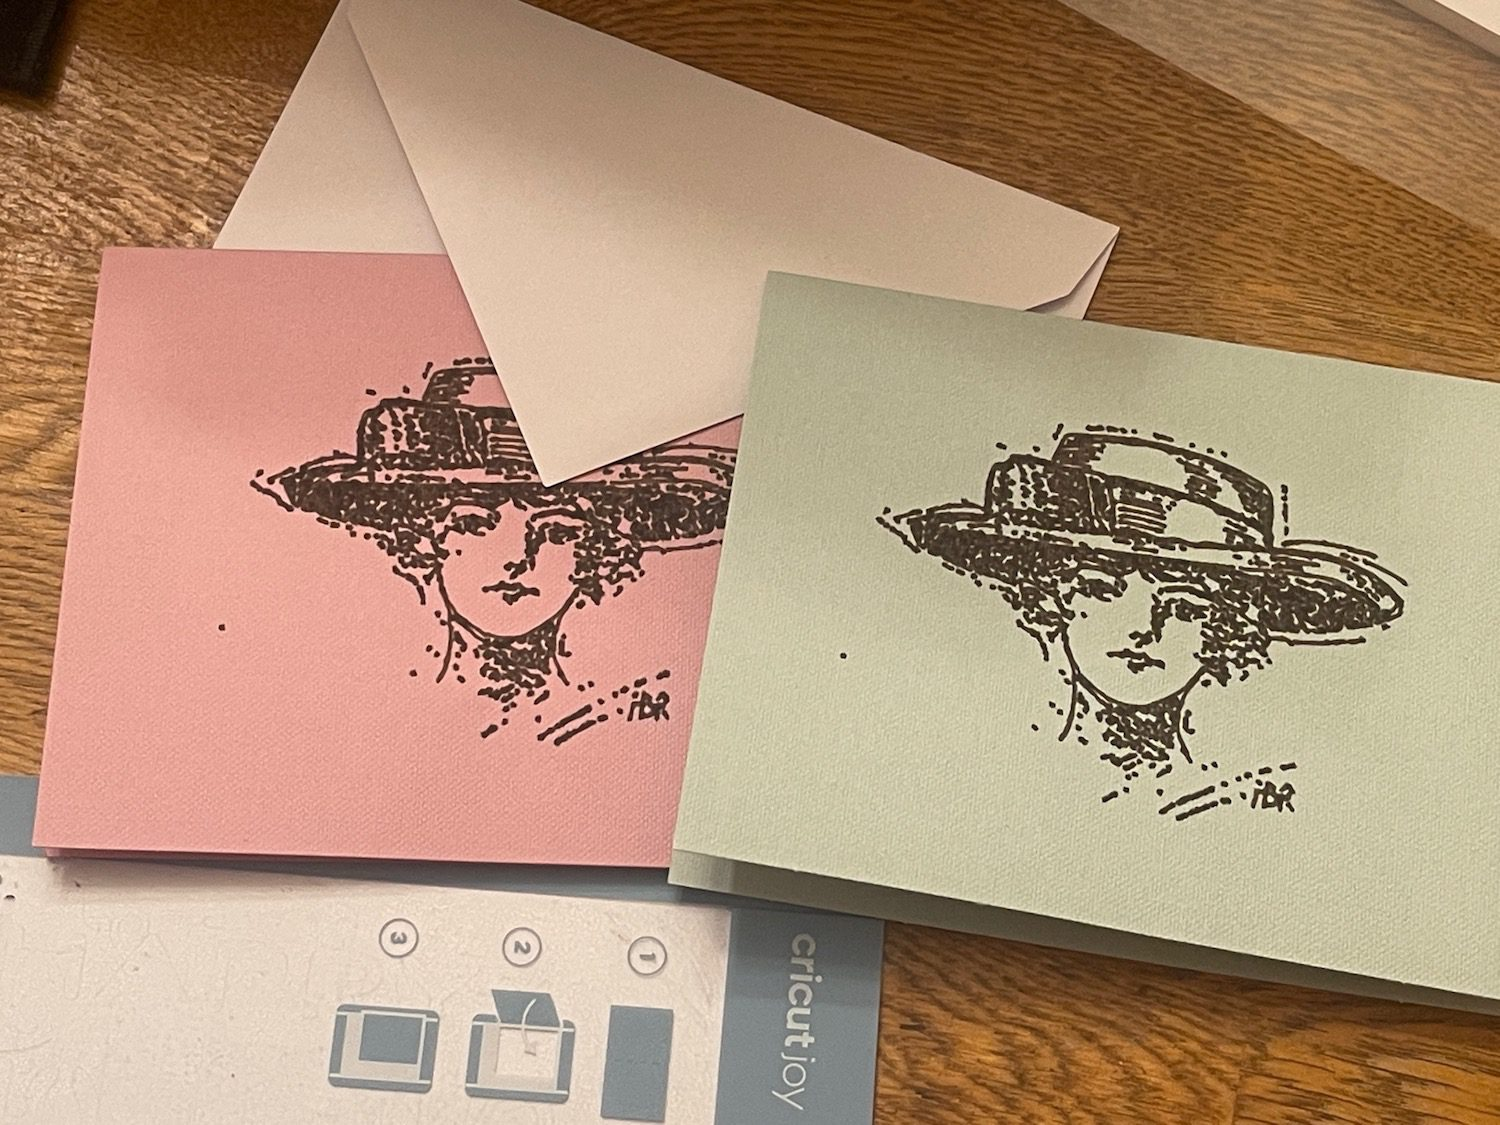 Personalized Stationery with the Cricut Joy